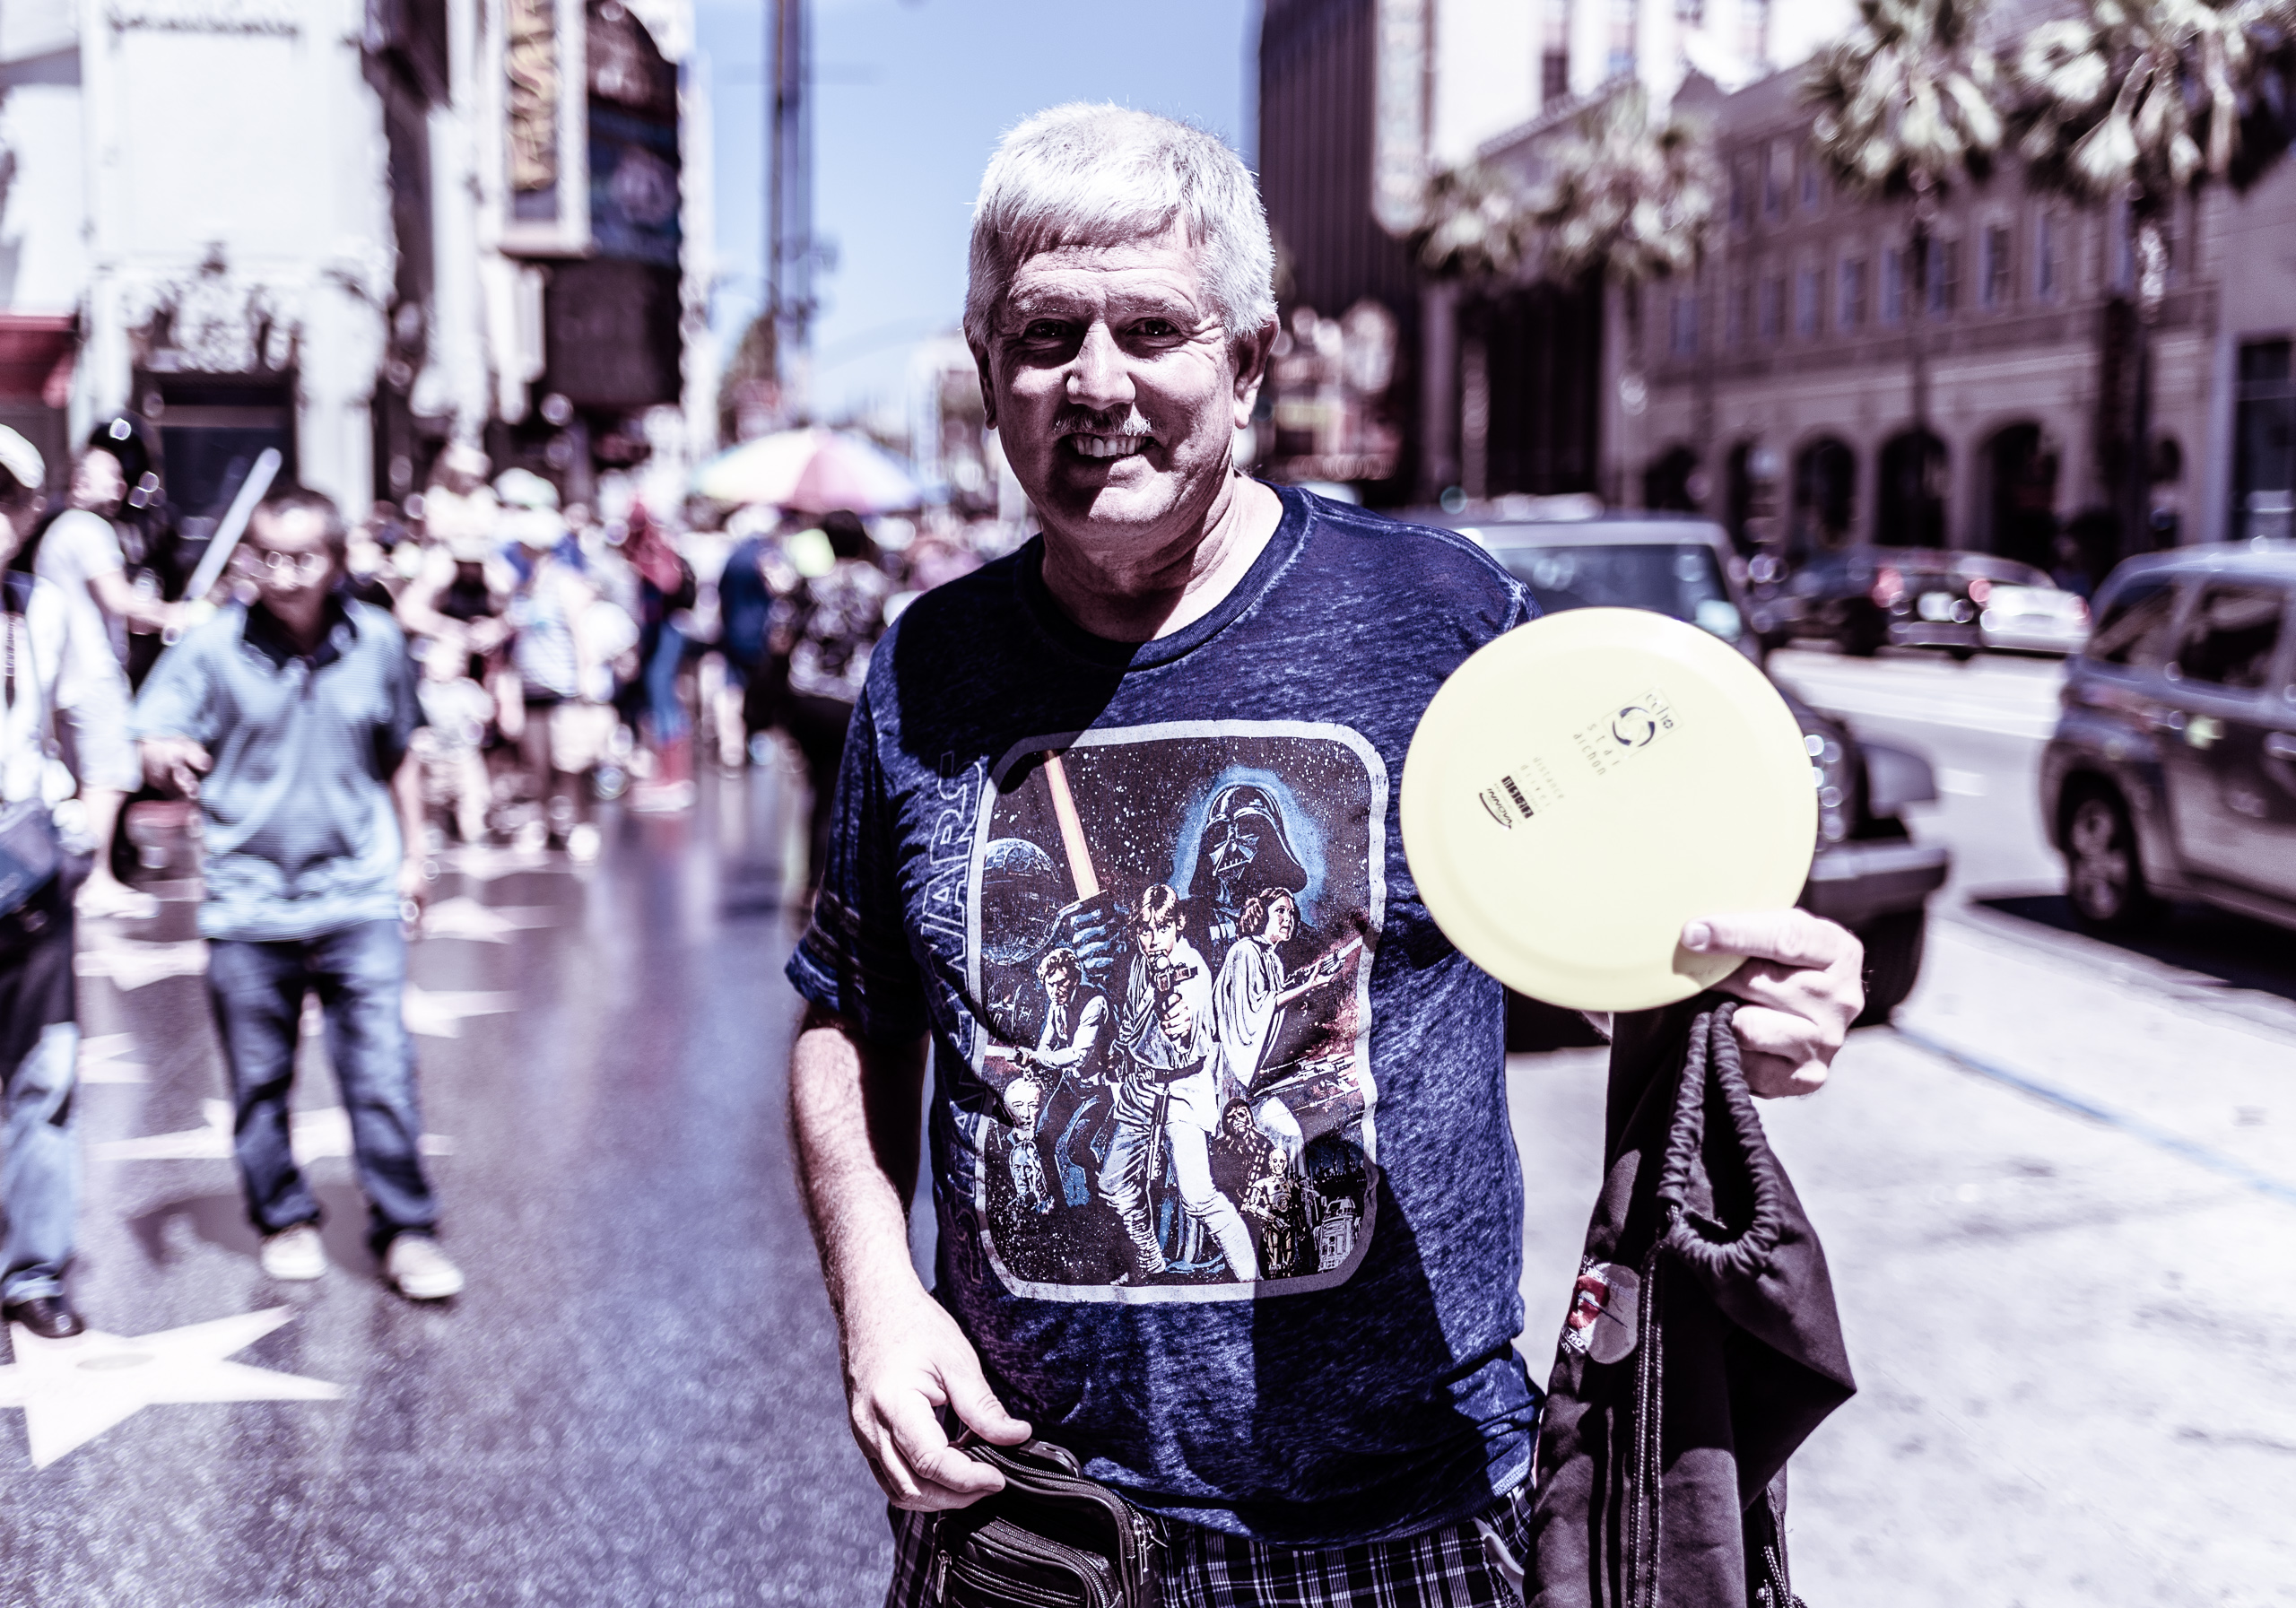 Larry Clifford Kirk, disc golf promoter, showing his disc (Frisbee) as he stands on the curb on Hollywood Blvd